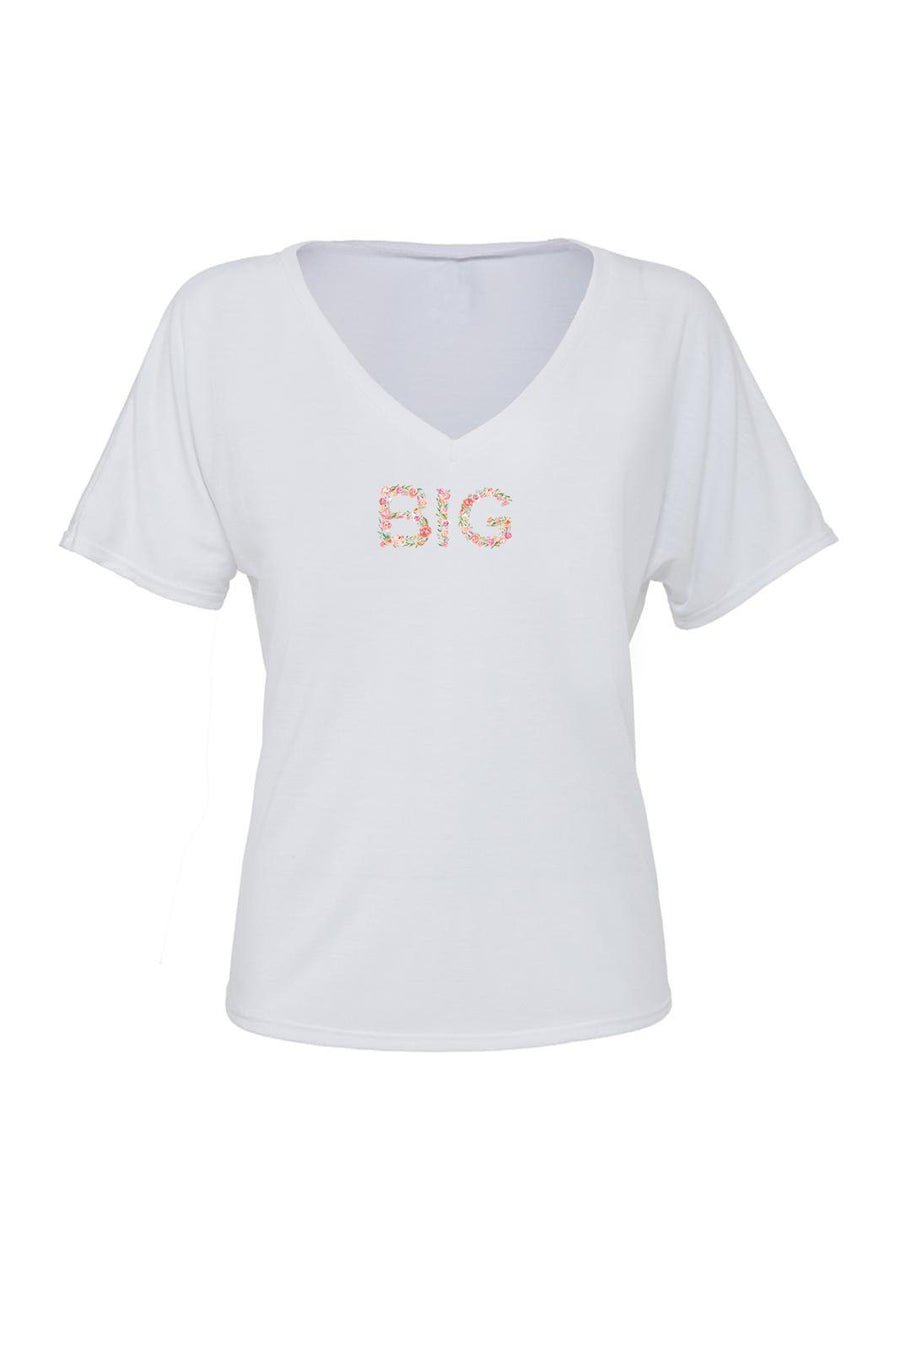 Big Little Floral Letters Shirt - Bella Slouchy V-Neck Short Sleeve, Ladies, Sunny and Southern, - Sunny and Southern,